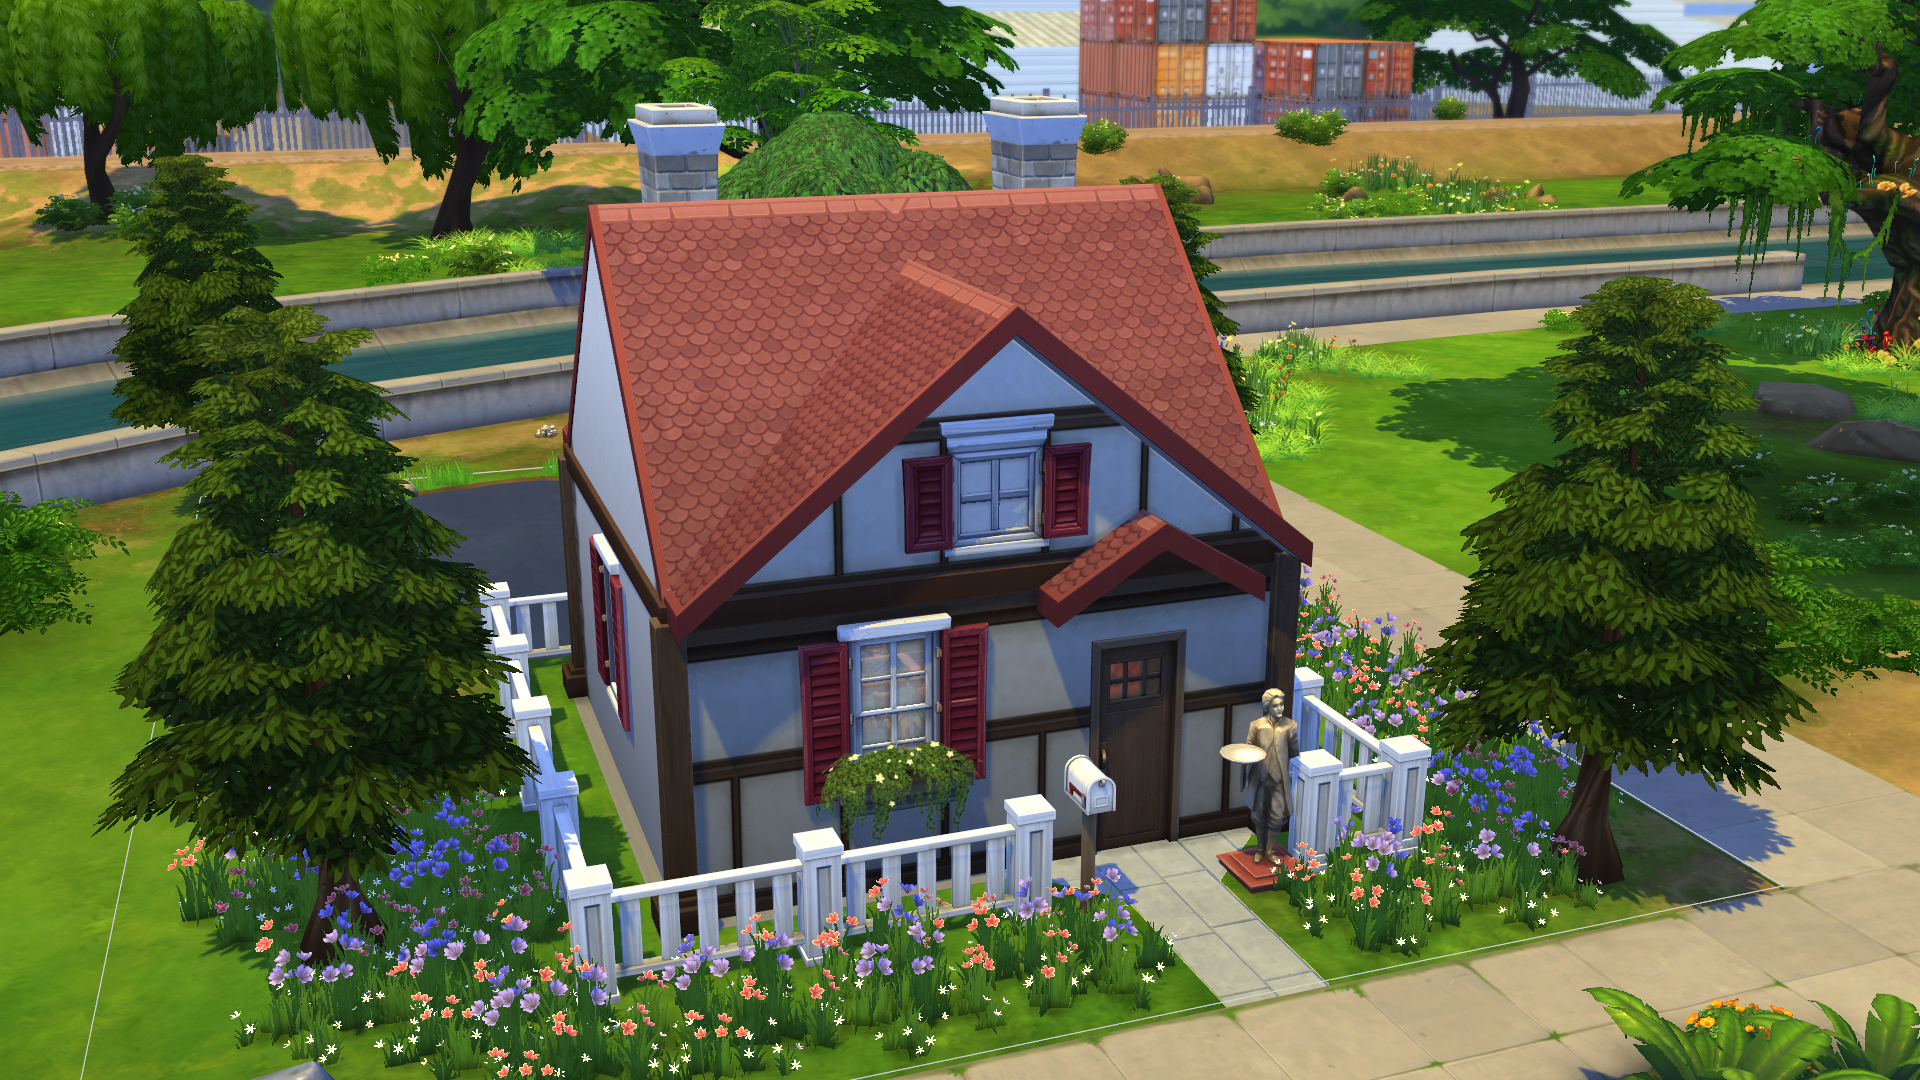 I Made A Gamecube-Style Animal Crossing House In The Sims